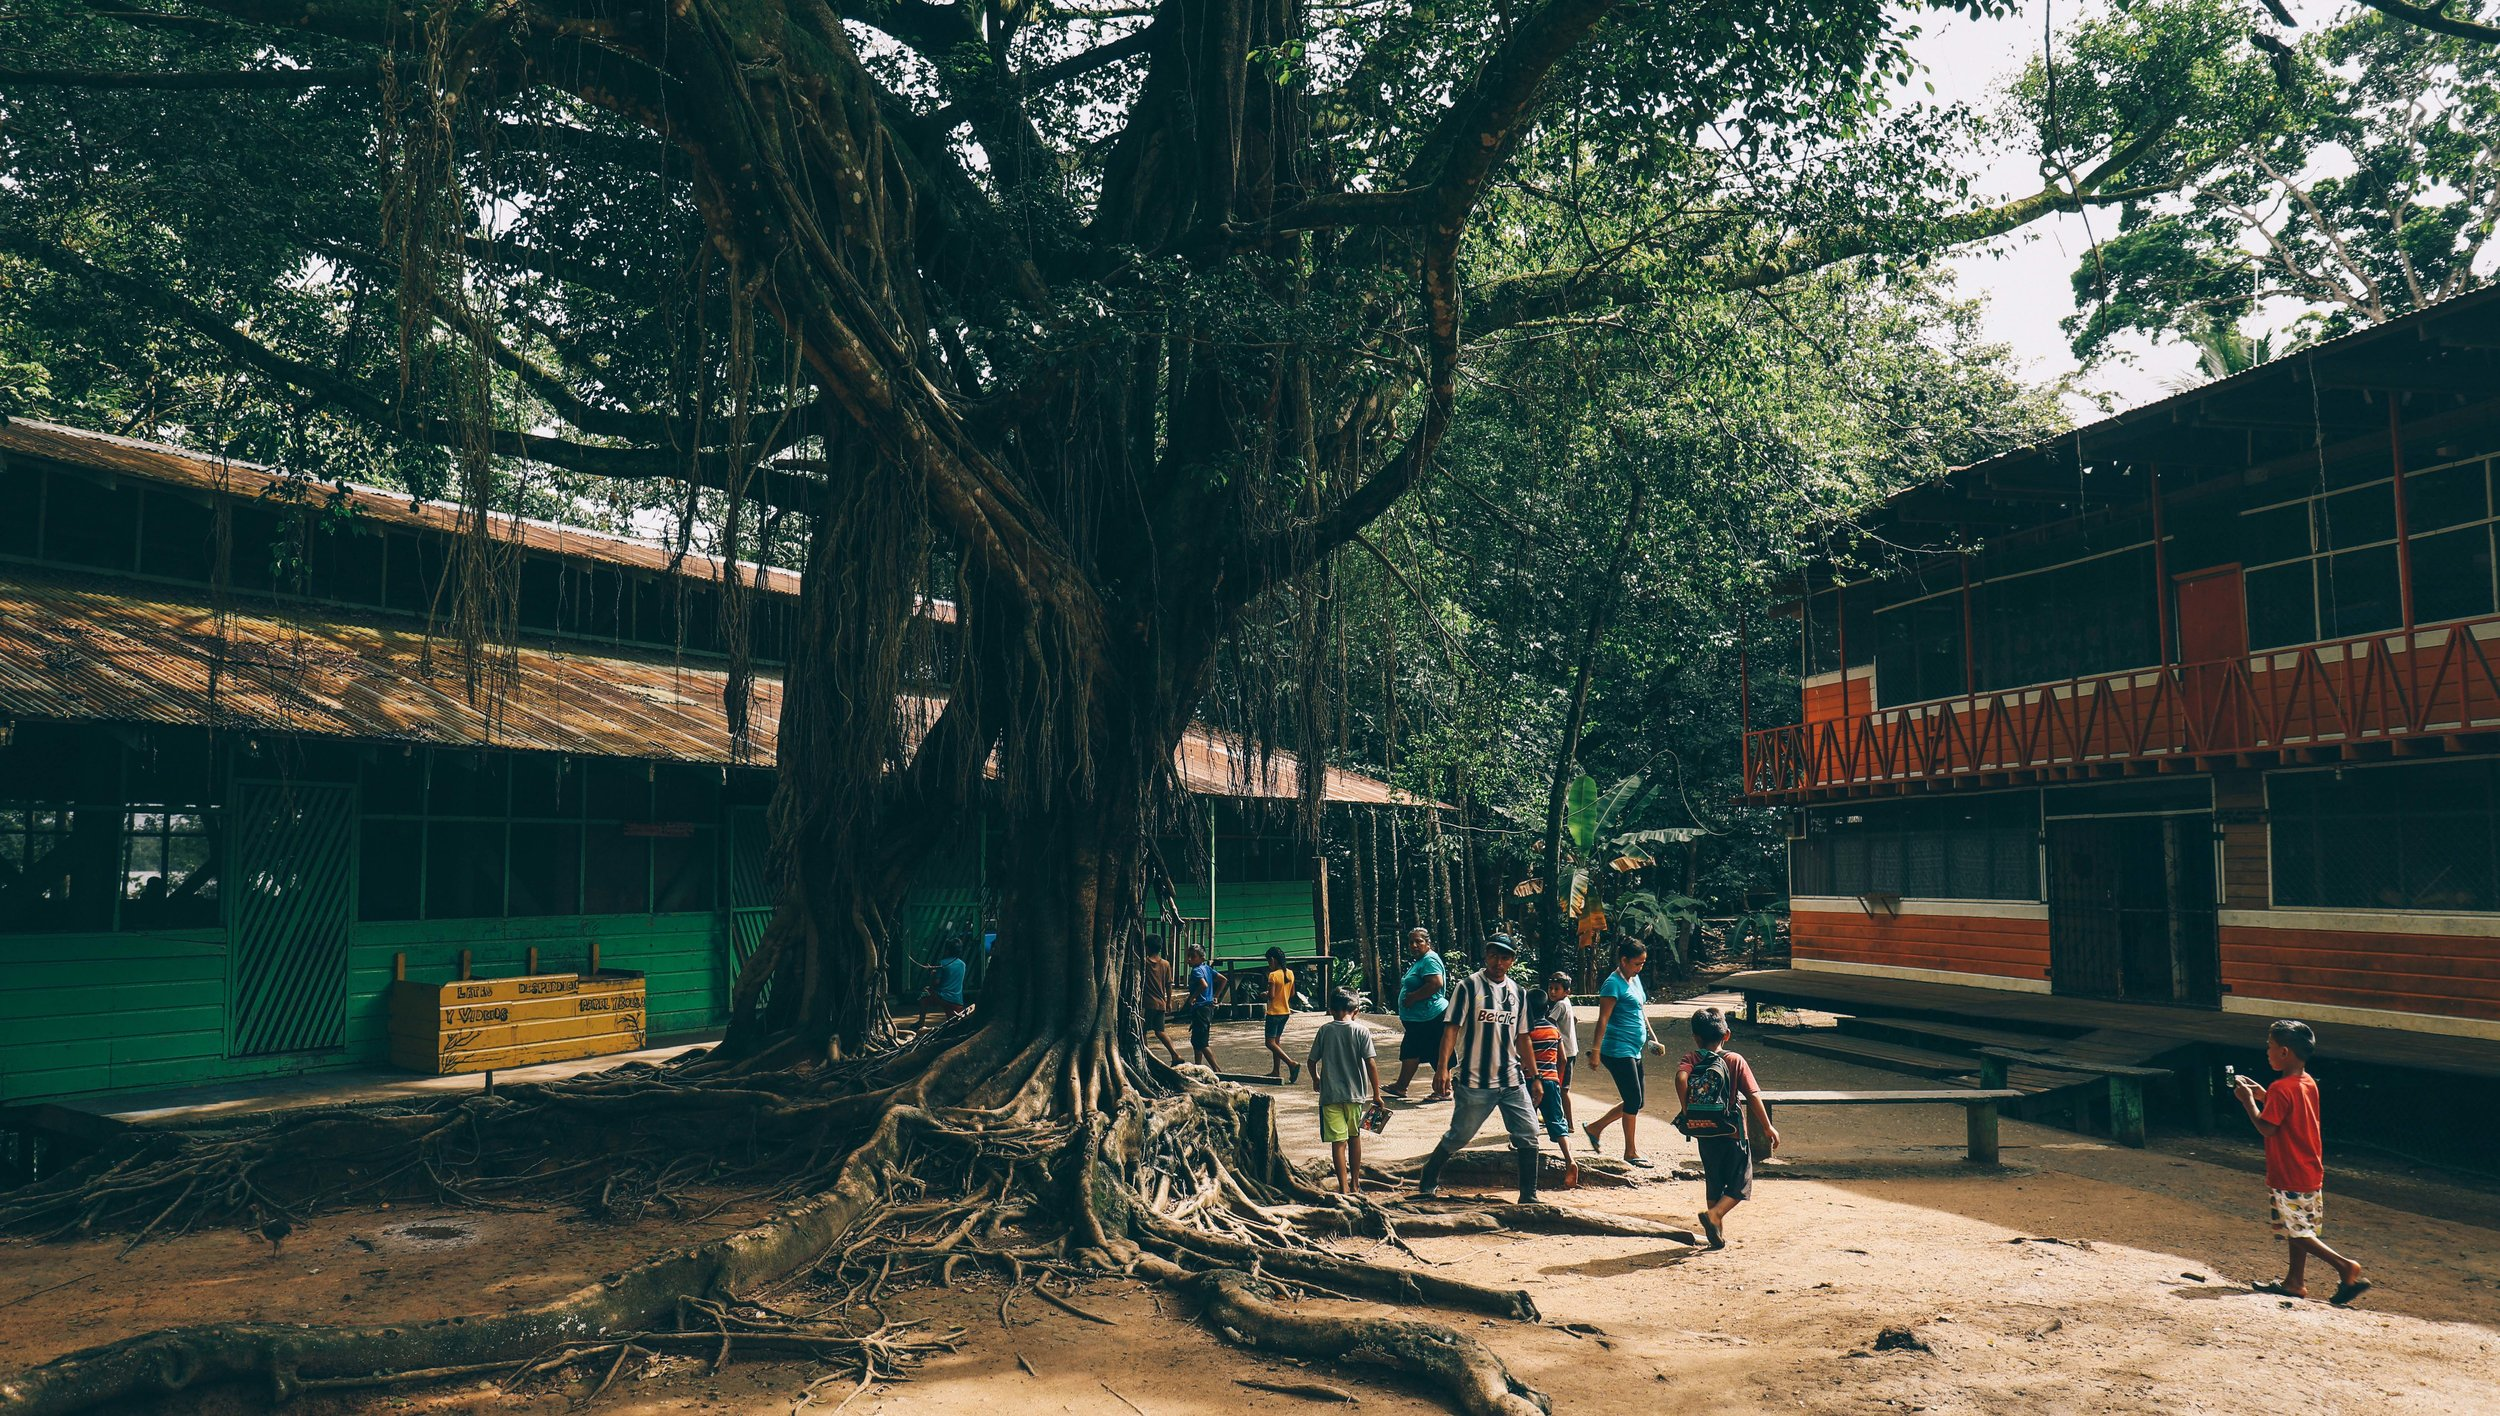 Dinning hall on the left and girls home on the right.